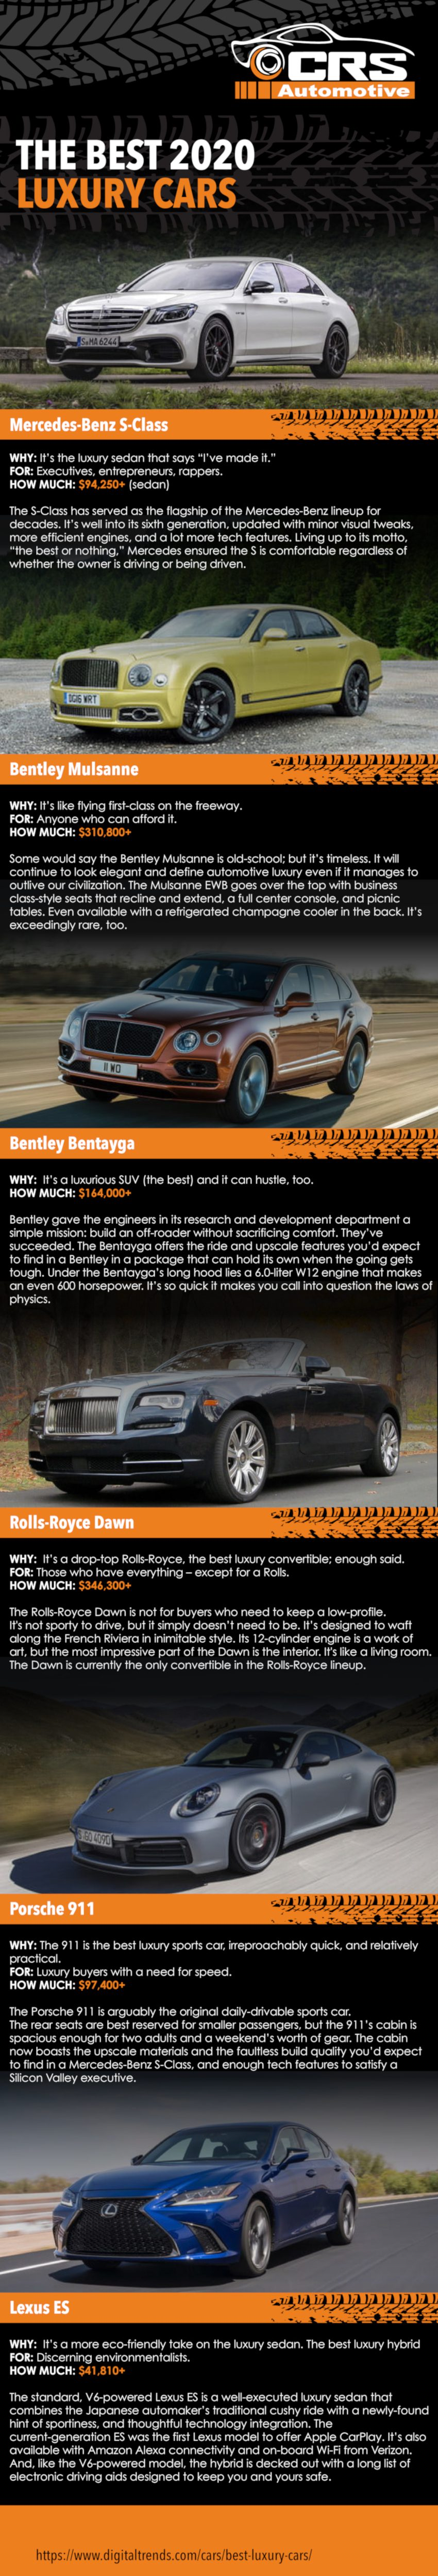 The Best 2020 luxury cars-Infographic